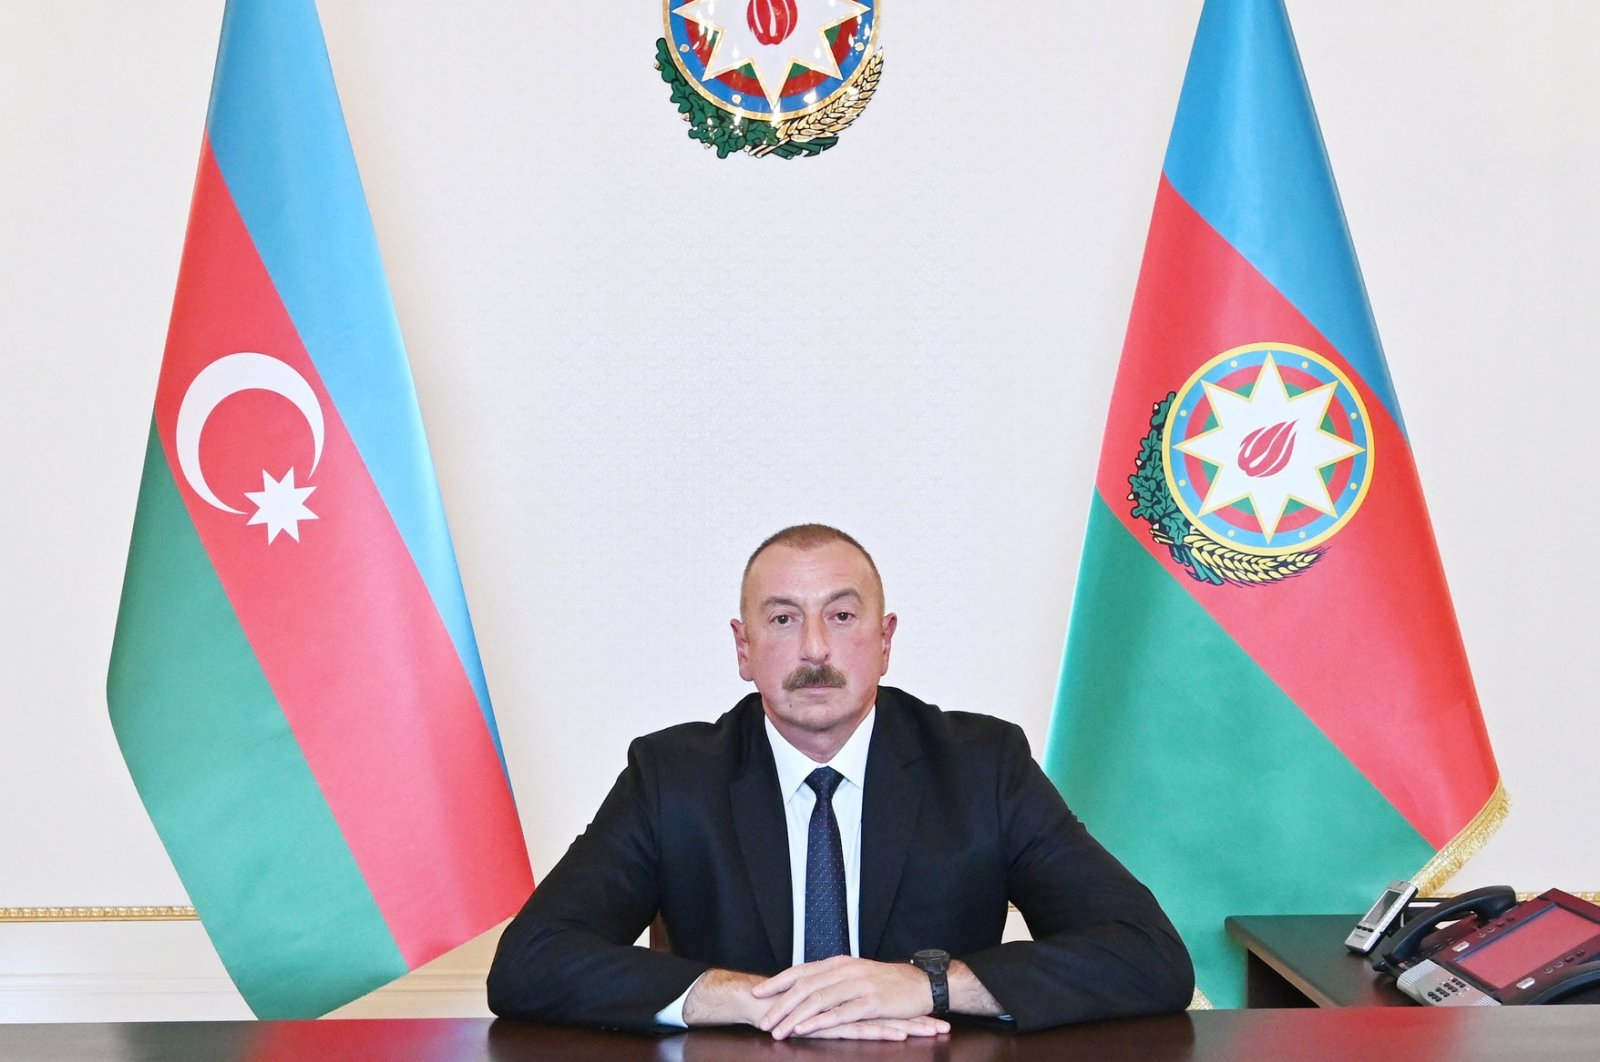 Azerbaijan's President Ilham Aliyev is pictured during an address to the nation in Baku, Azerbaijan Oct. 4, 2020. (REUTERS)